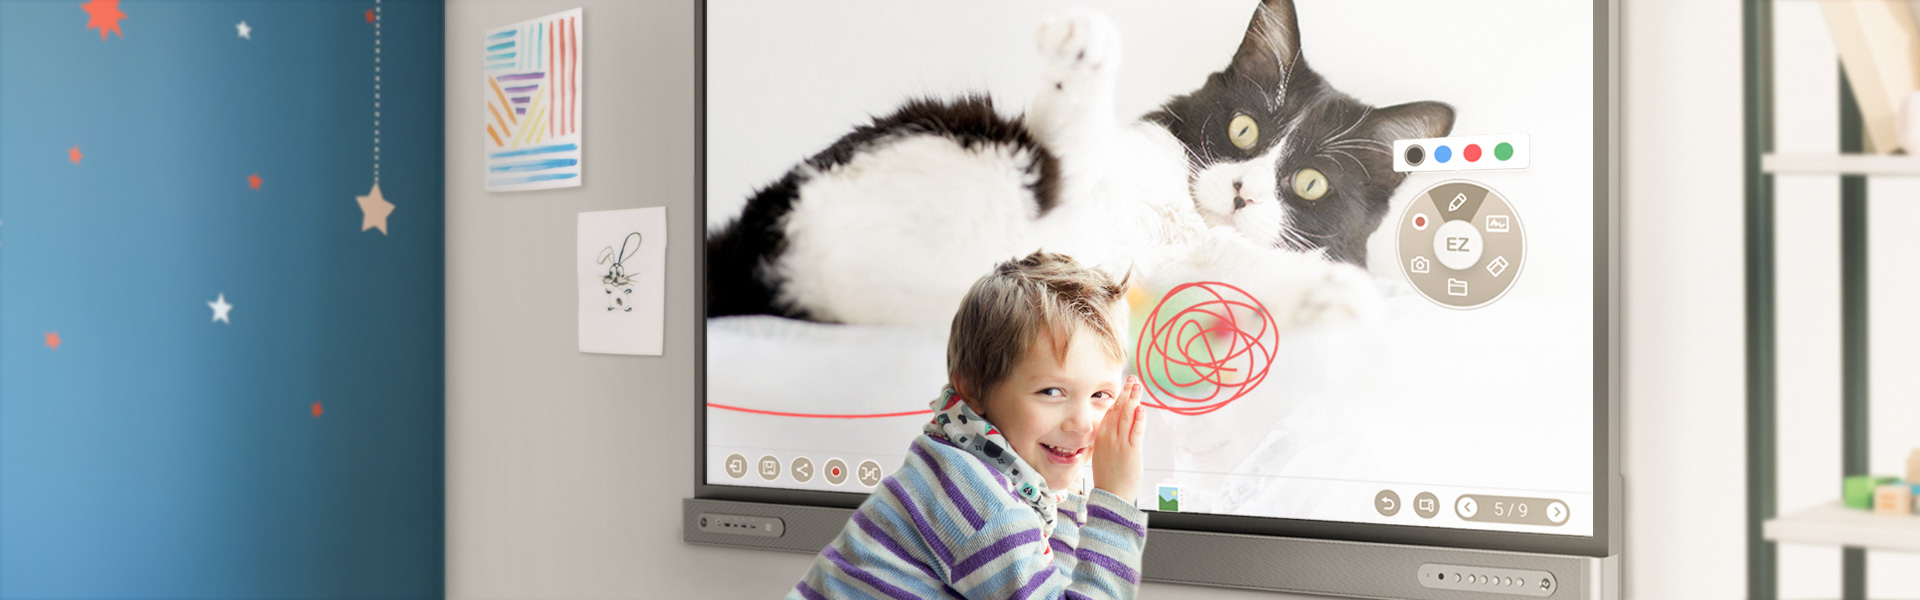 K-12 student using BenQ Interactive Flat Panel display in class